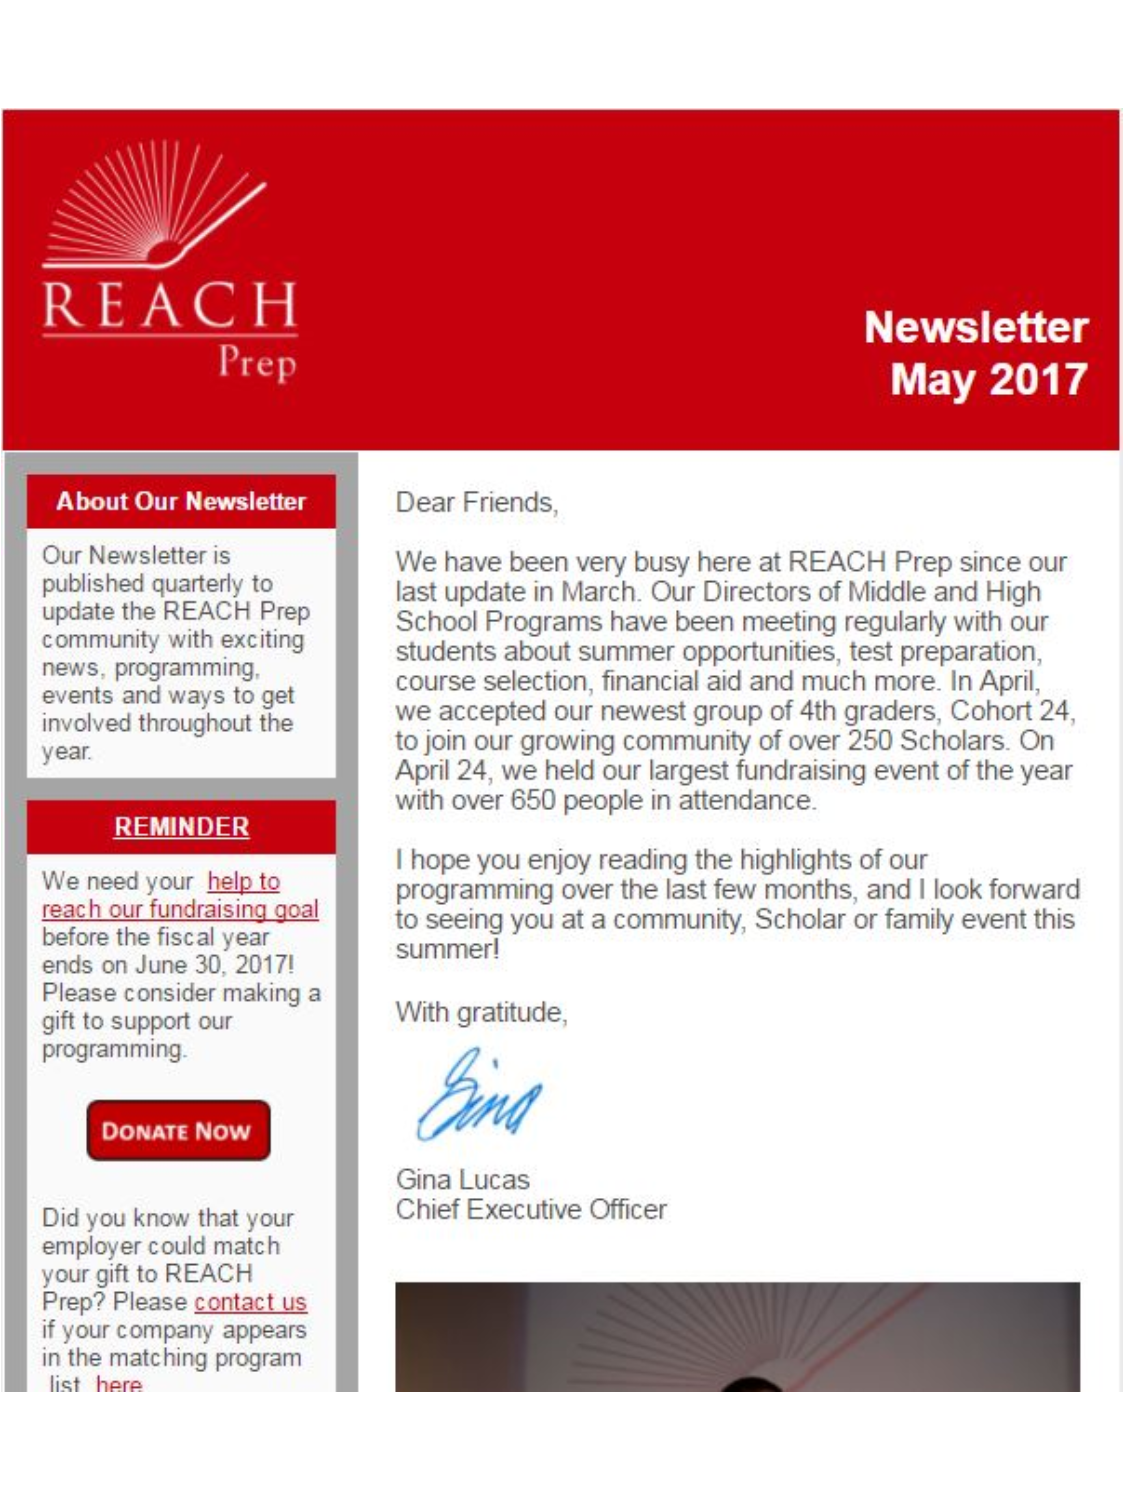 Newsletter: May 2017